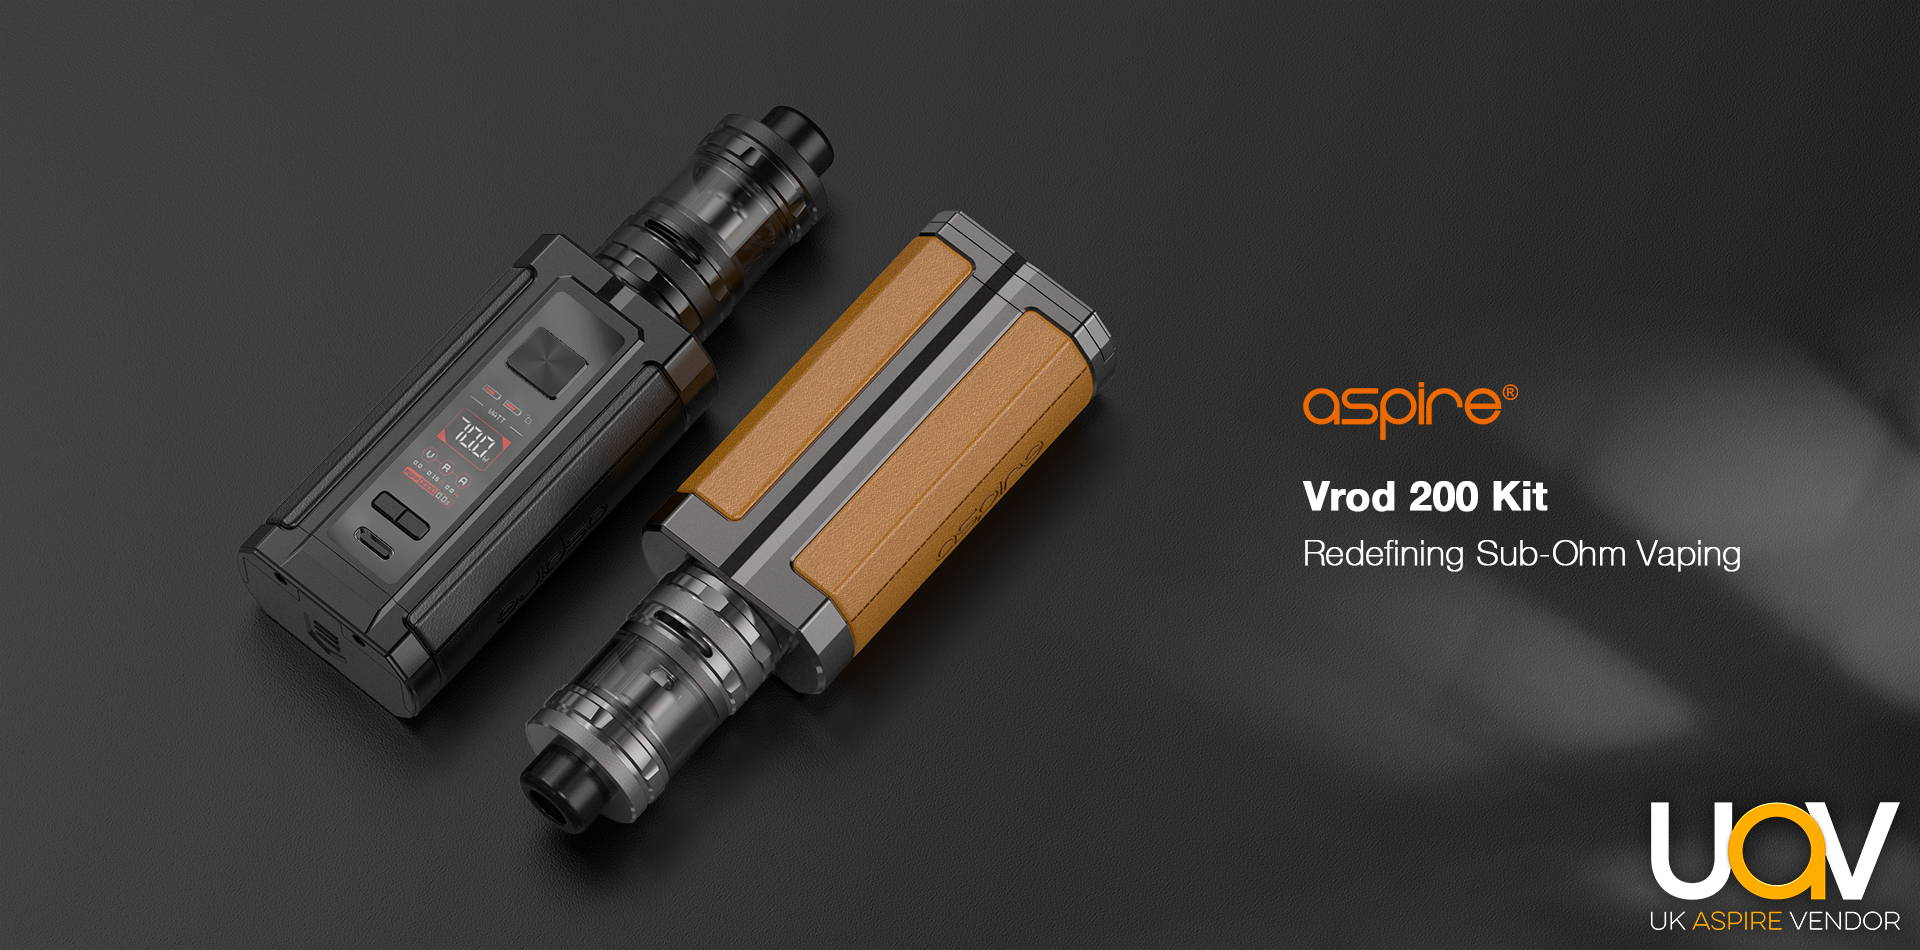 Aspire Vrod 200 | Vape Sub Ohm | Buy Aspire Vape Kits Online